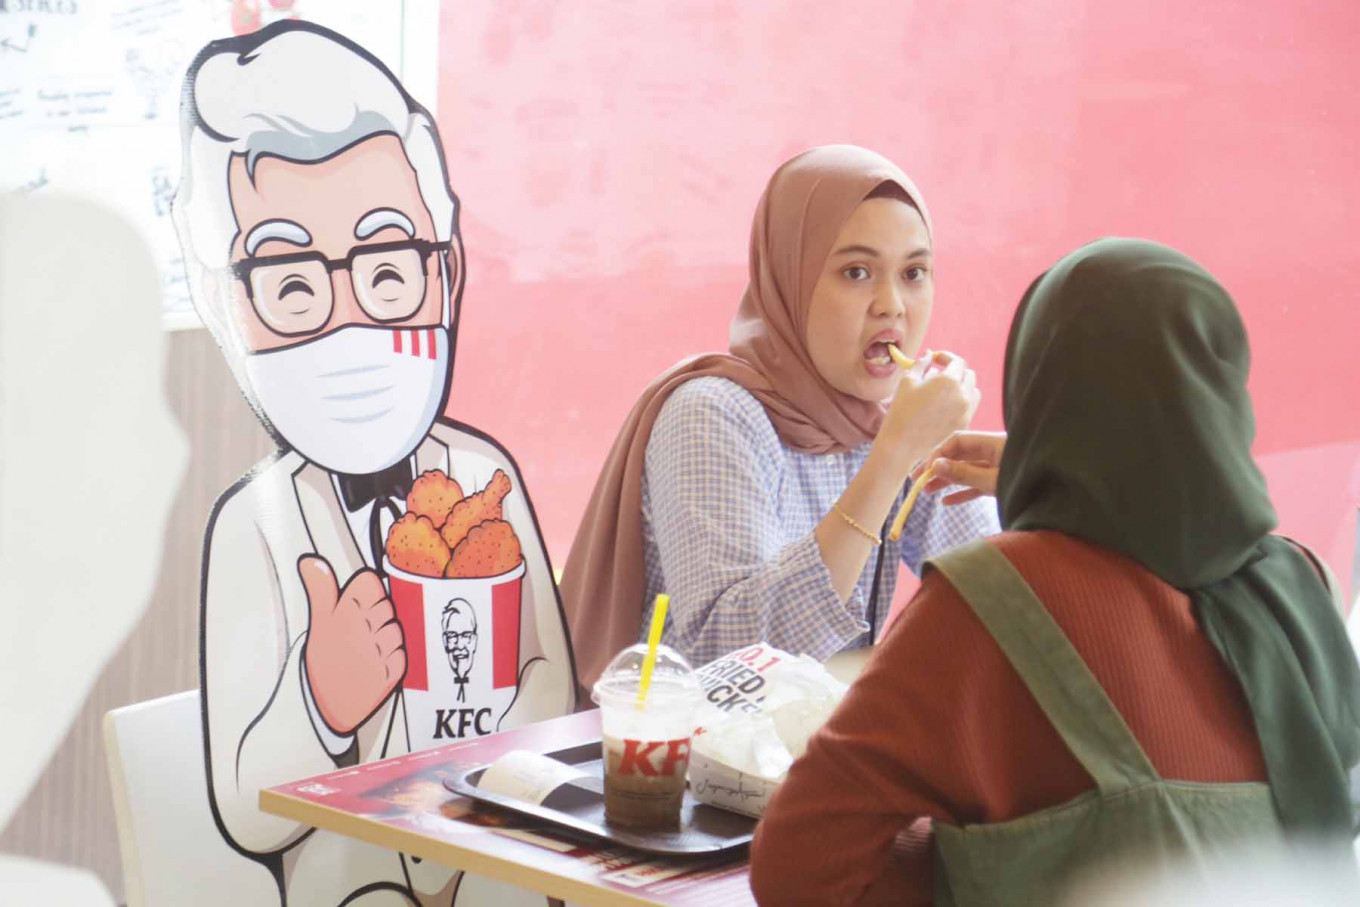 Up to 30 percent of Jakarta's restaurants could close down: PHRI